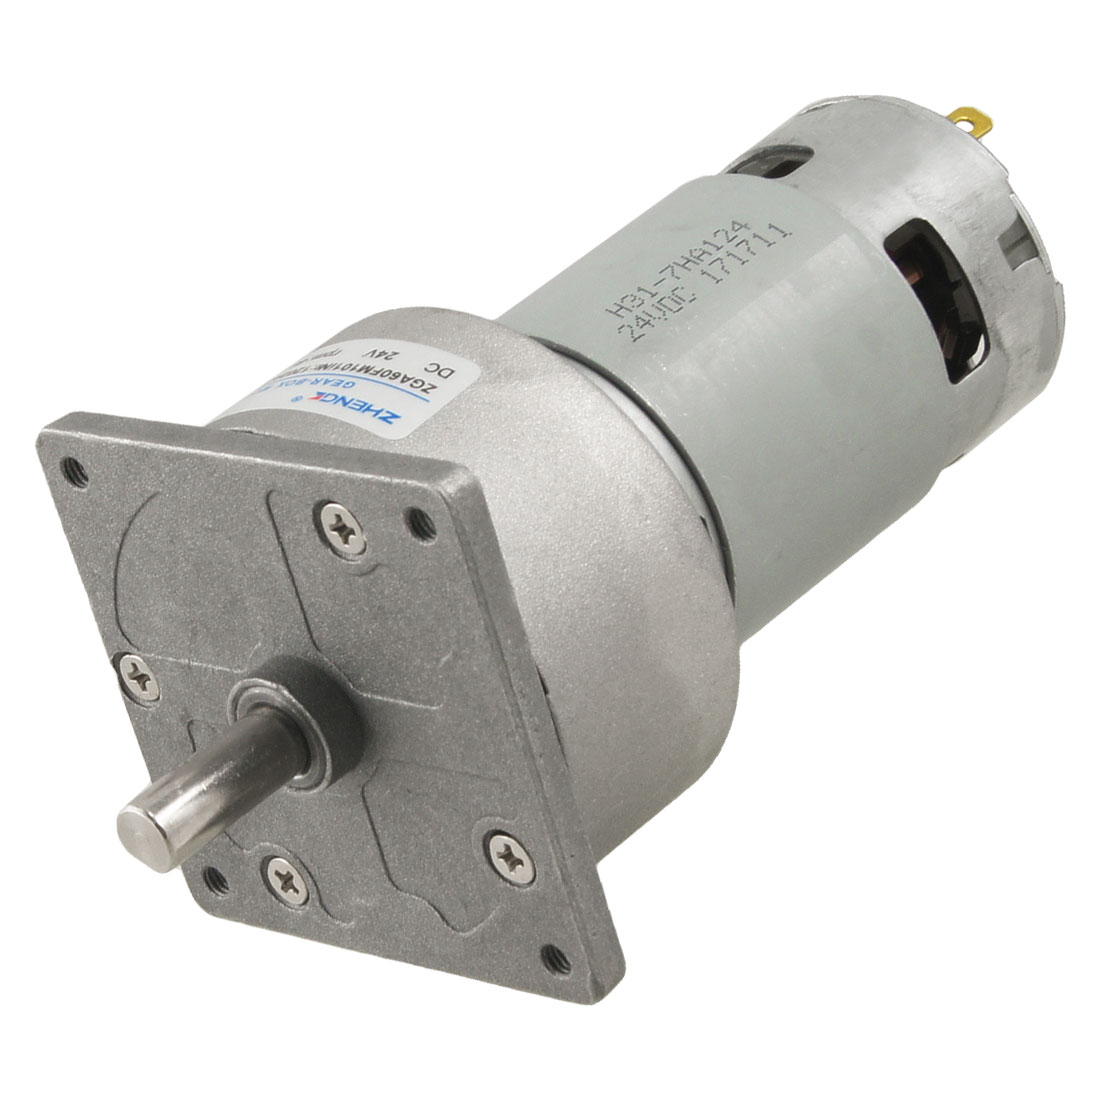 46RPM-Output-Speed-ZDA60FM-8mm-Diameter-24V-DC-Geared-Motor